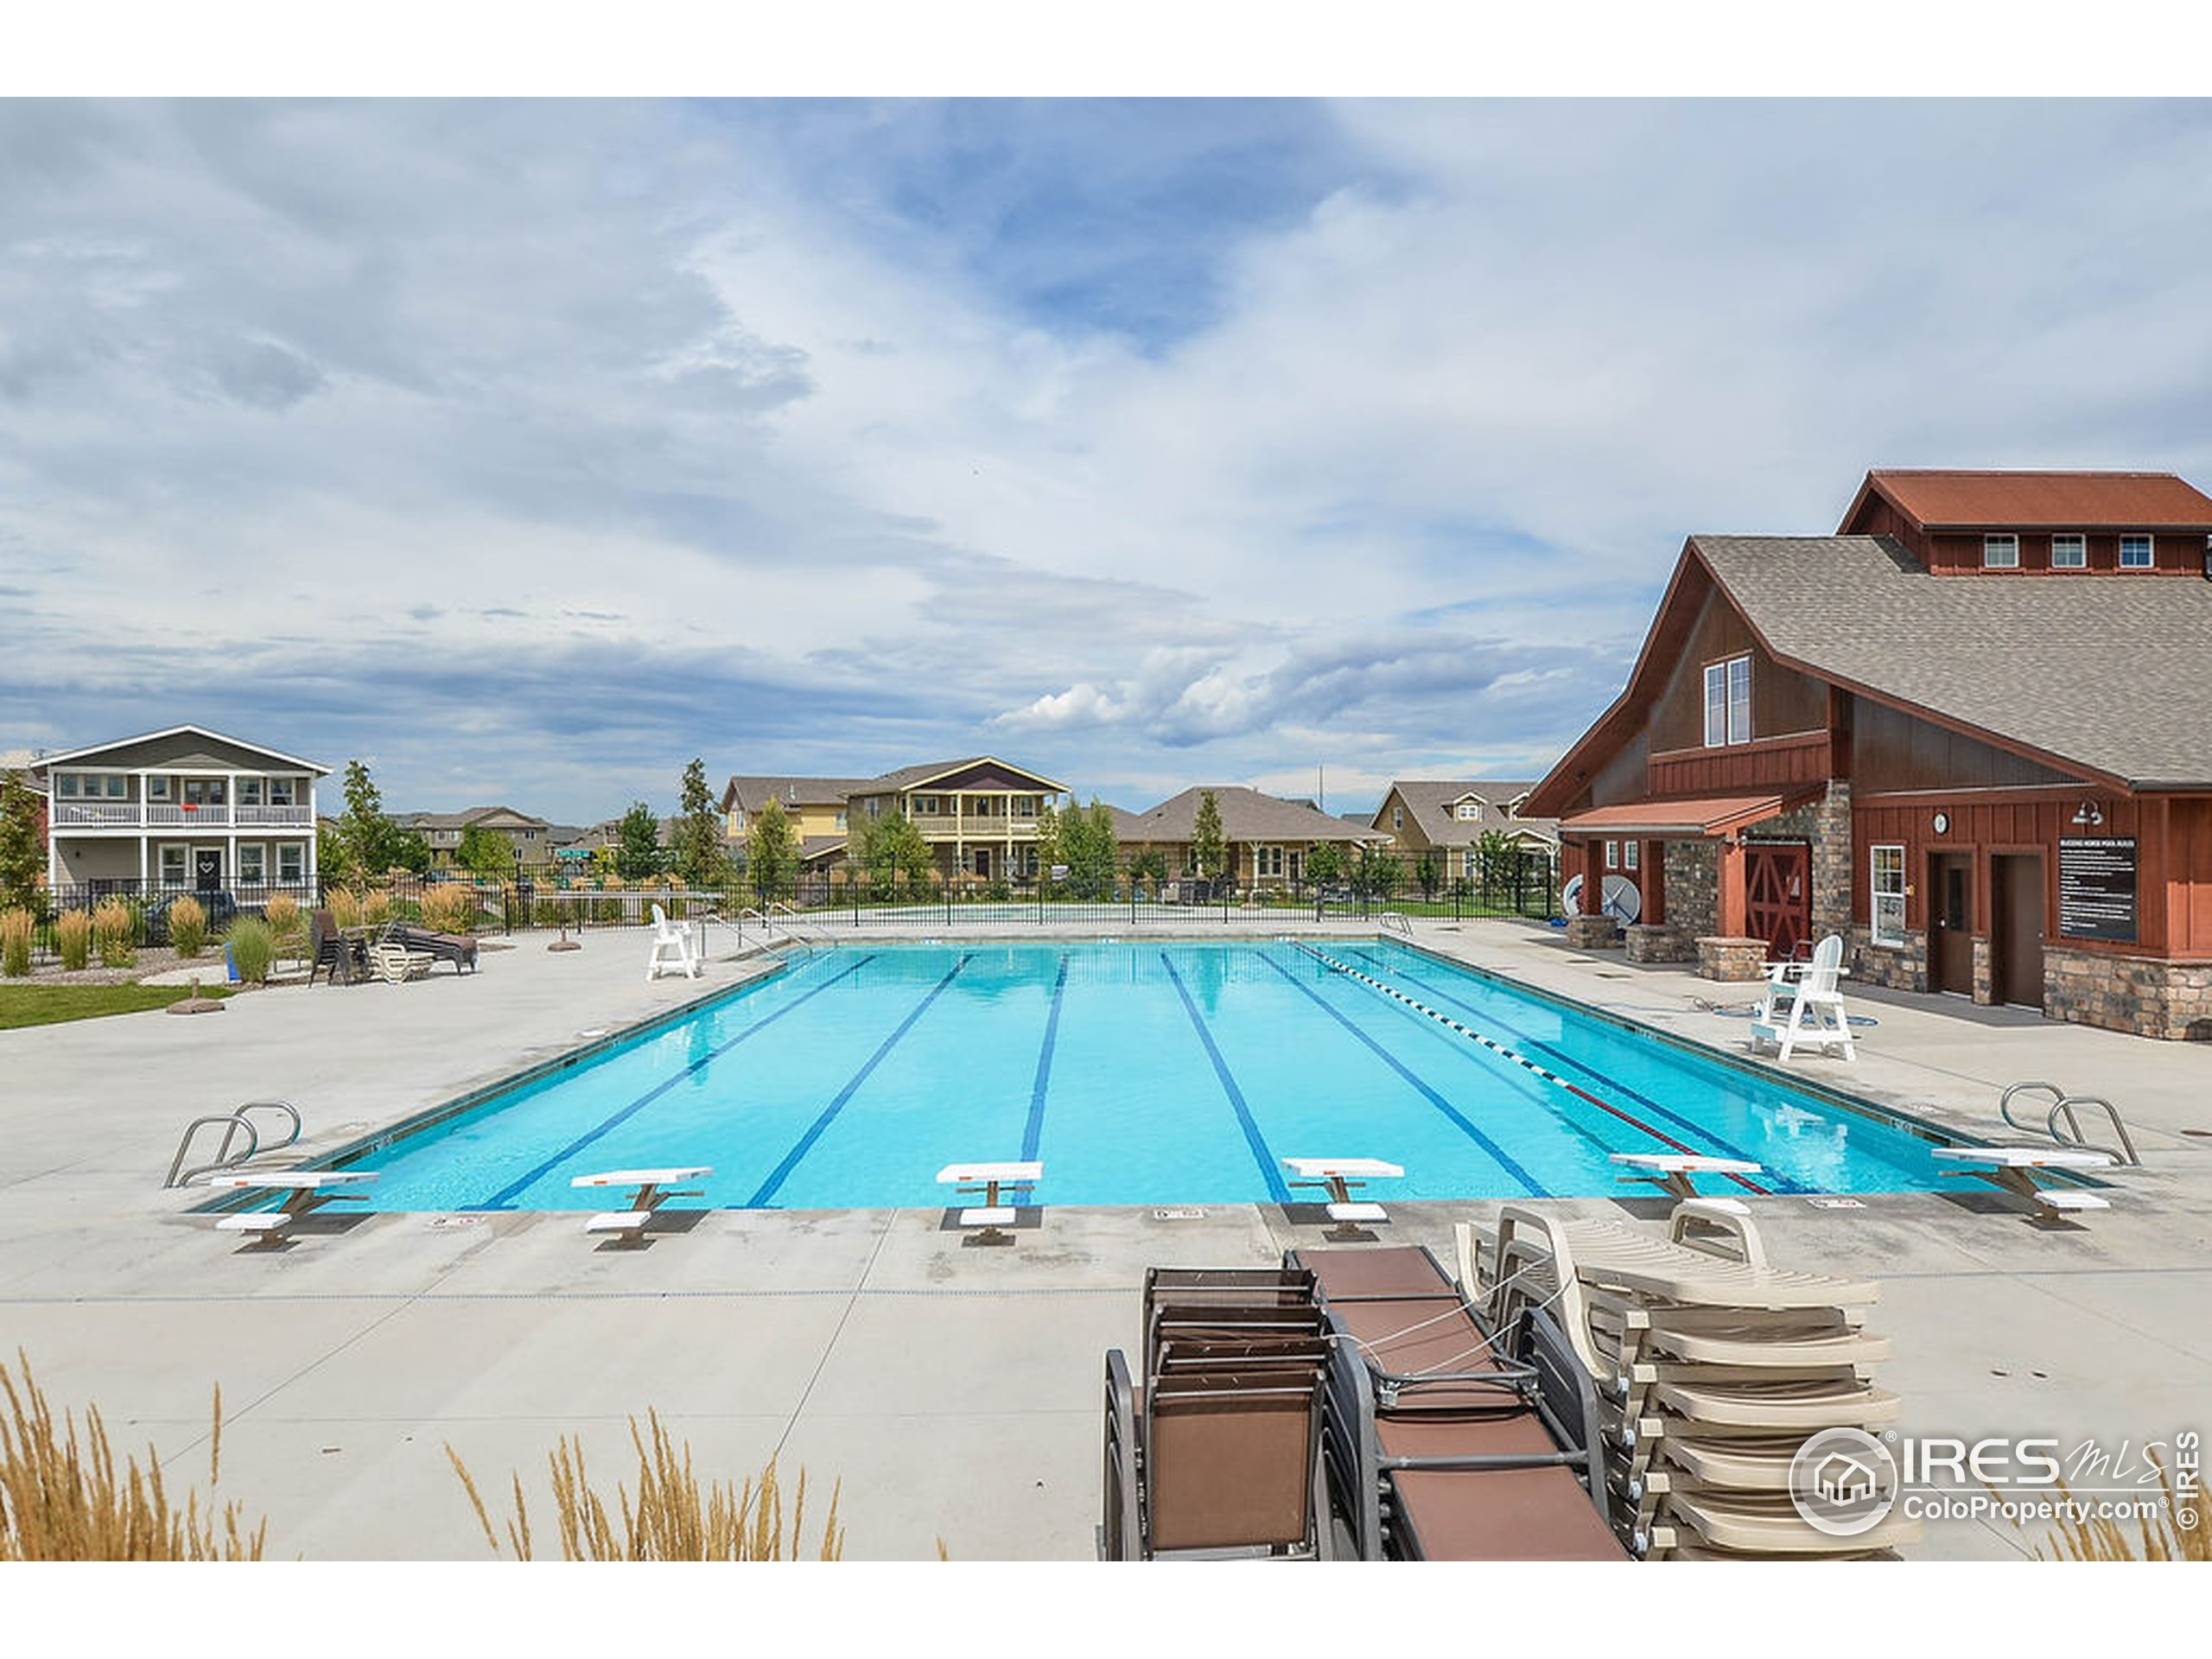 Where else can you find LOW HOA fees, NO METRO TAXING DISTRICT and a community pool? Come check out Bucking Horse and Jessup Farms.